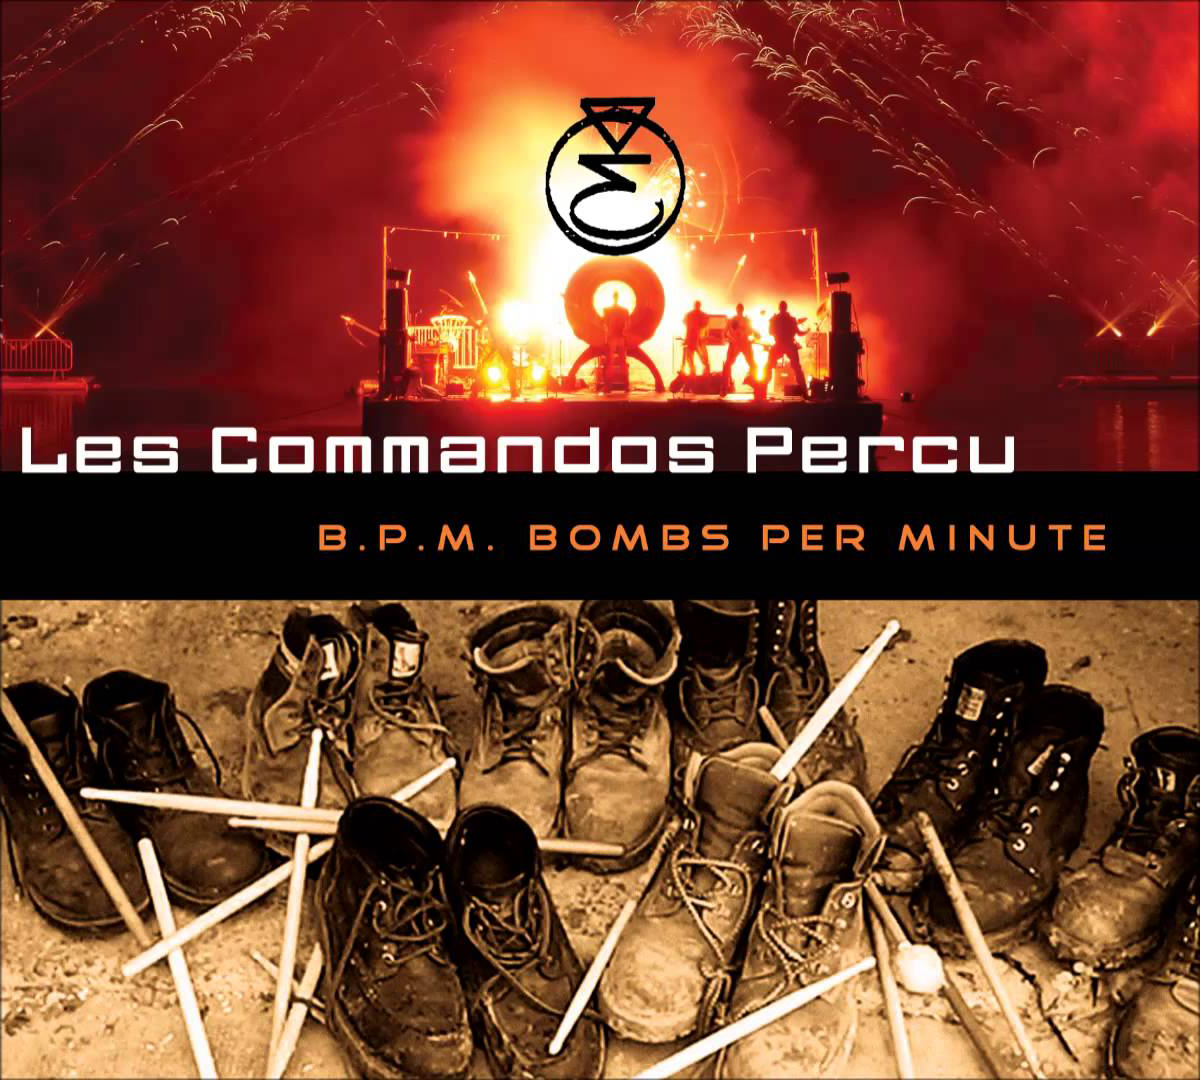 cover cd bpm commandos percu